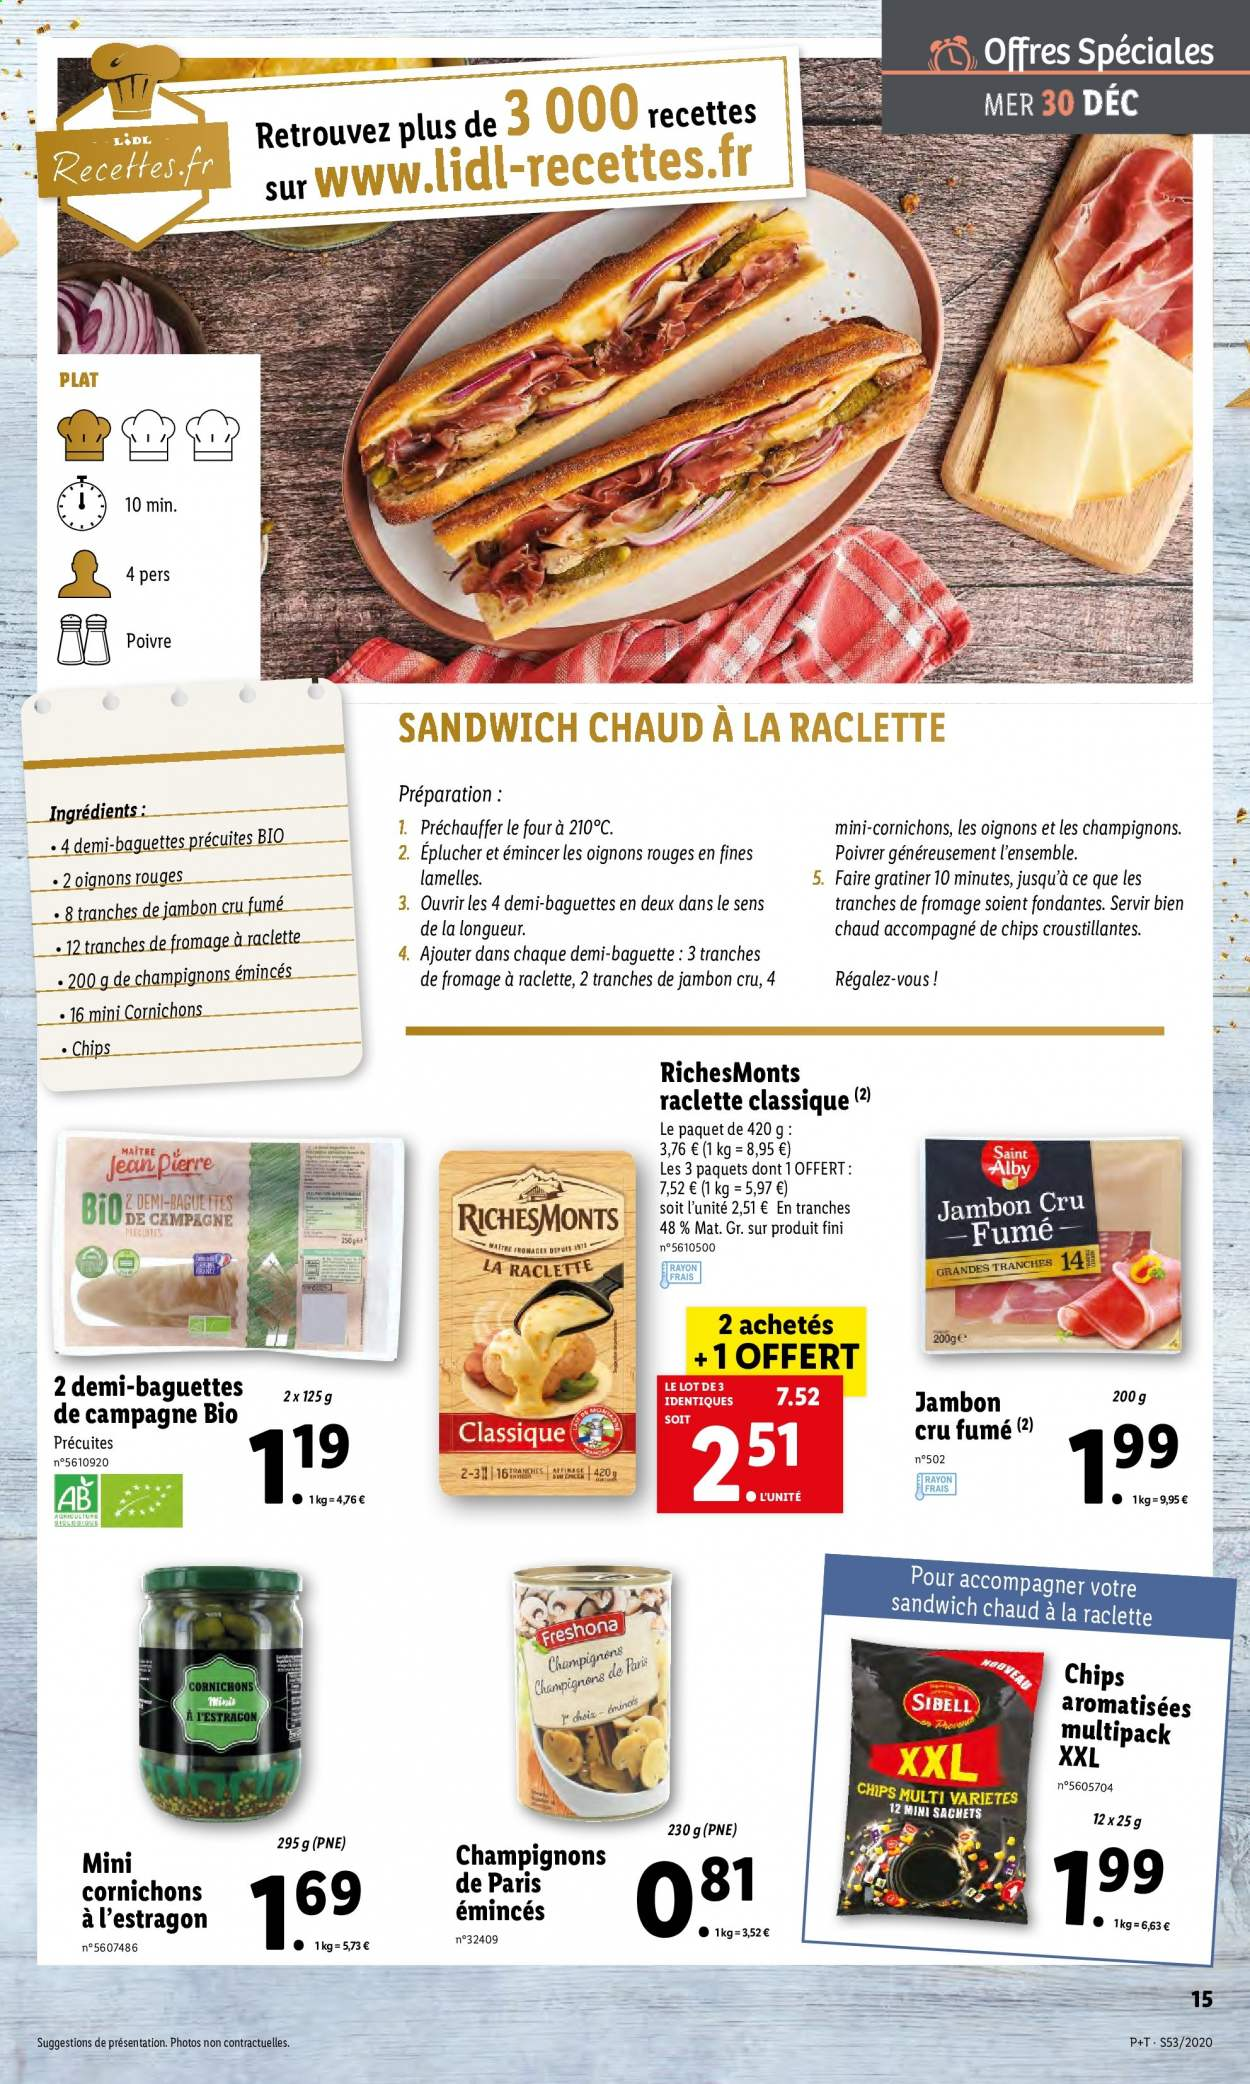 Catalogue Lidl - 30.12.2020 - 05.01.2021. Page 15.